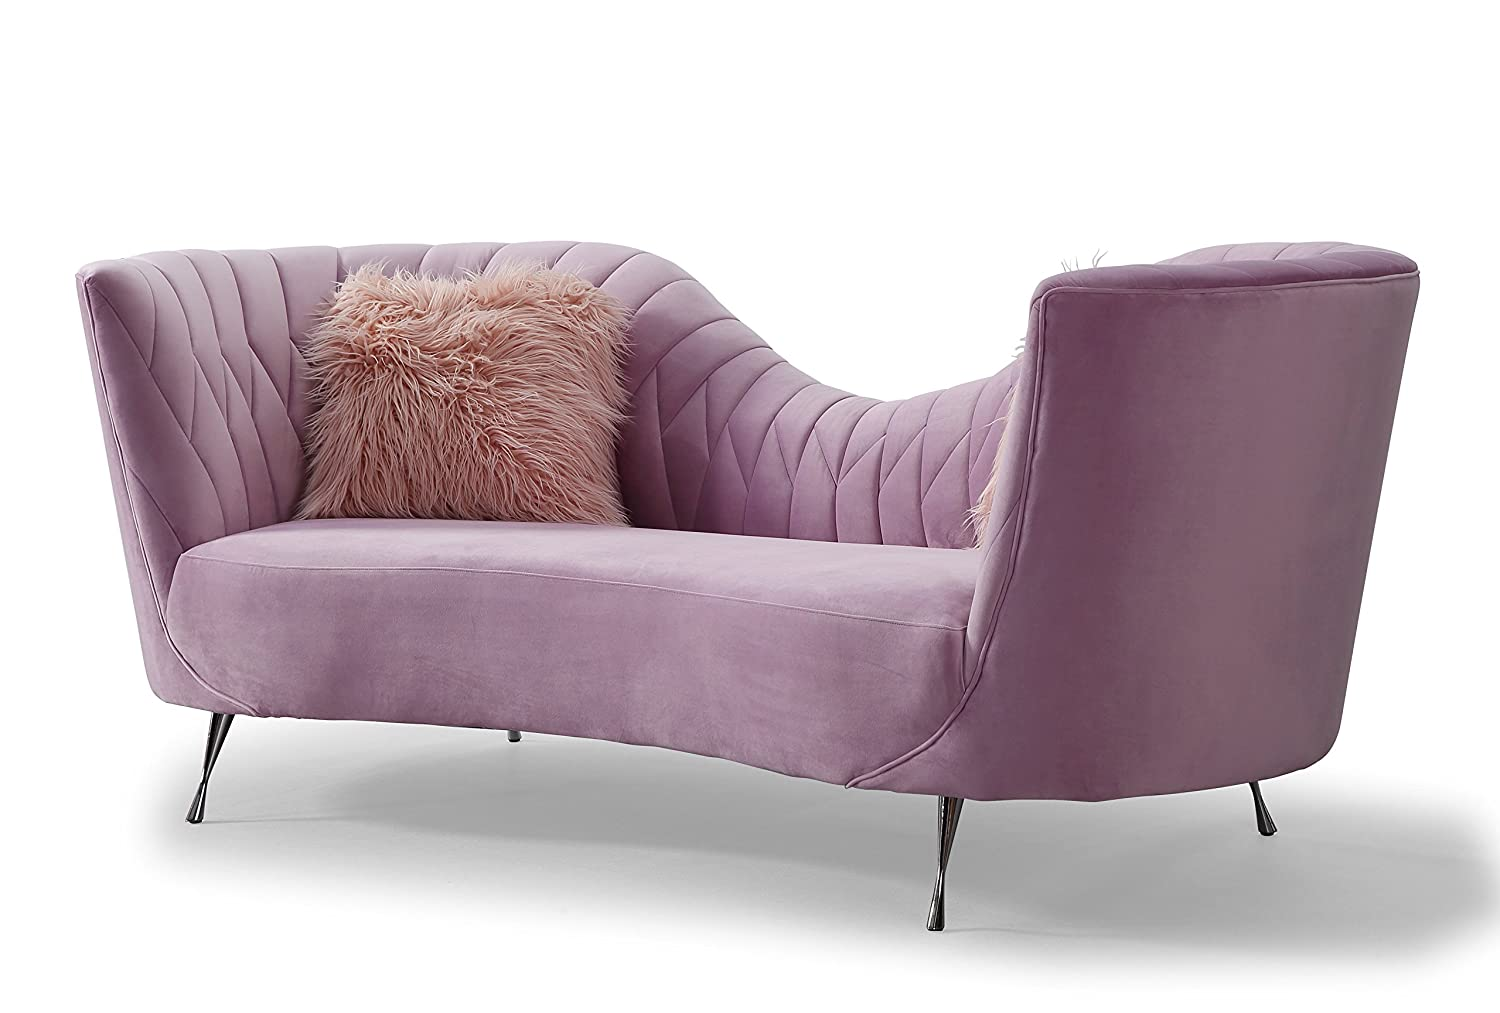 Amazon.com: Tov Furniture TOV-L6128 Velvet Sofa, Blush ...